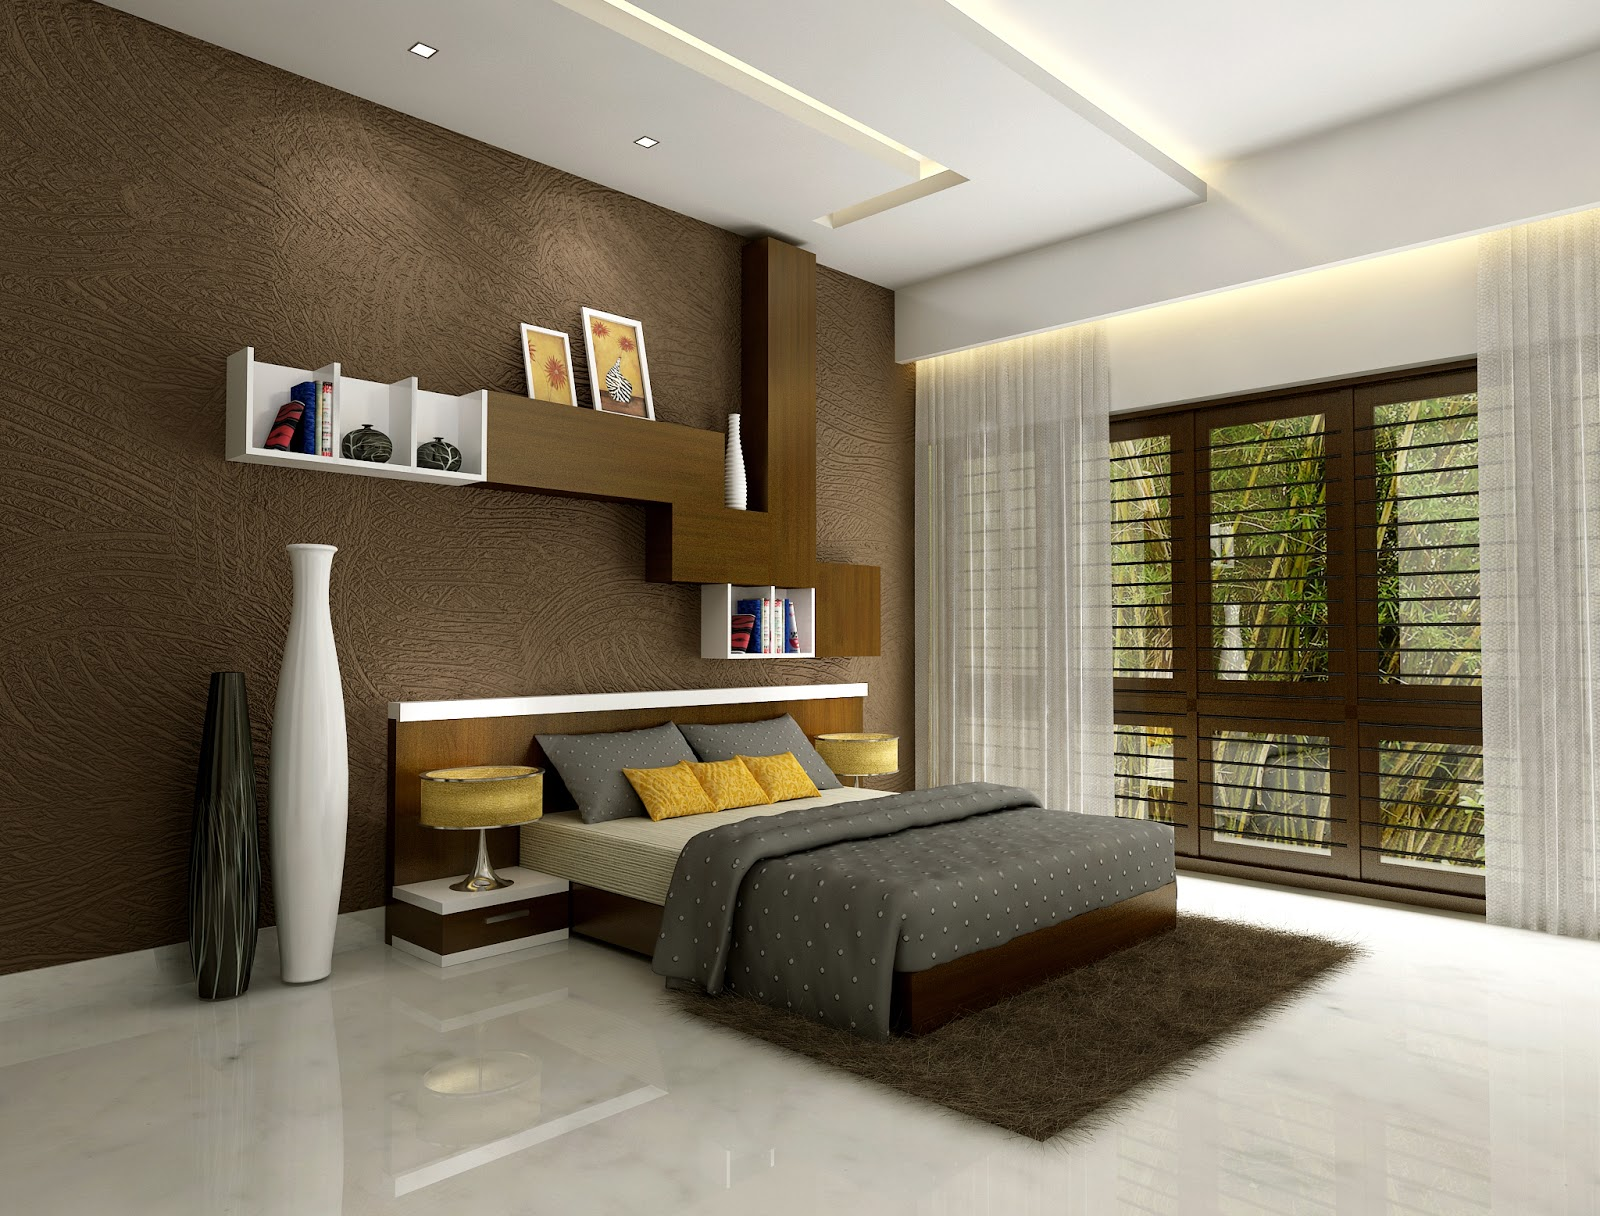 25 Best Modern Bedroom Designs on Room.decor  id=30888